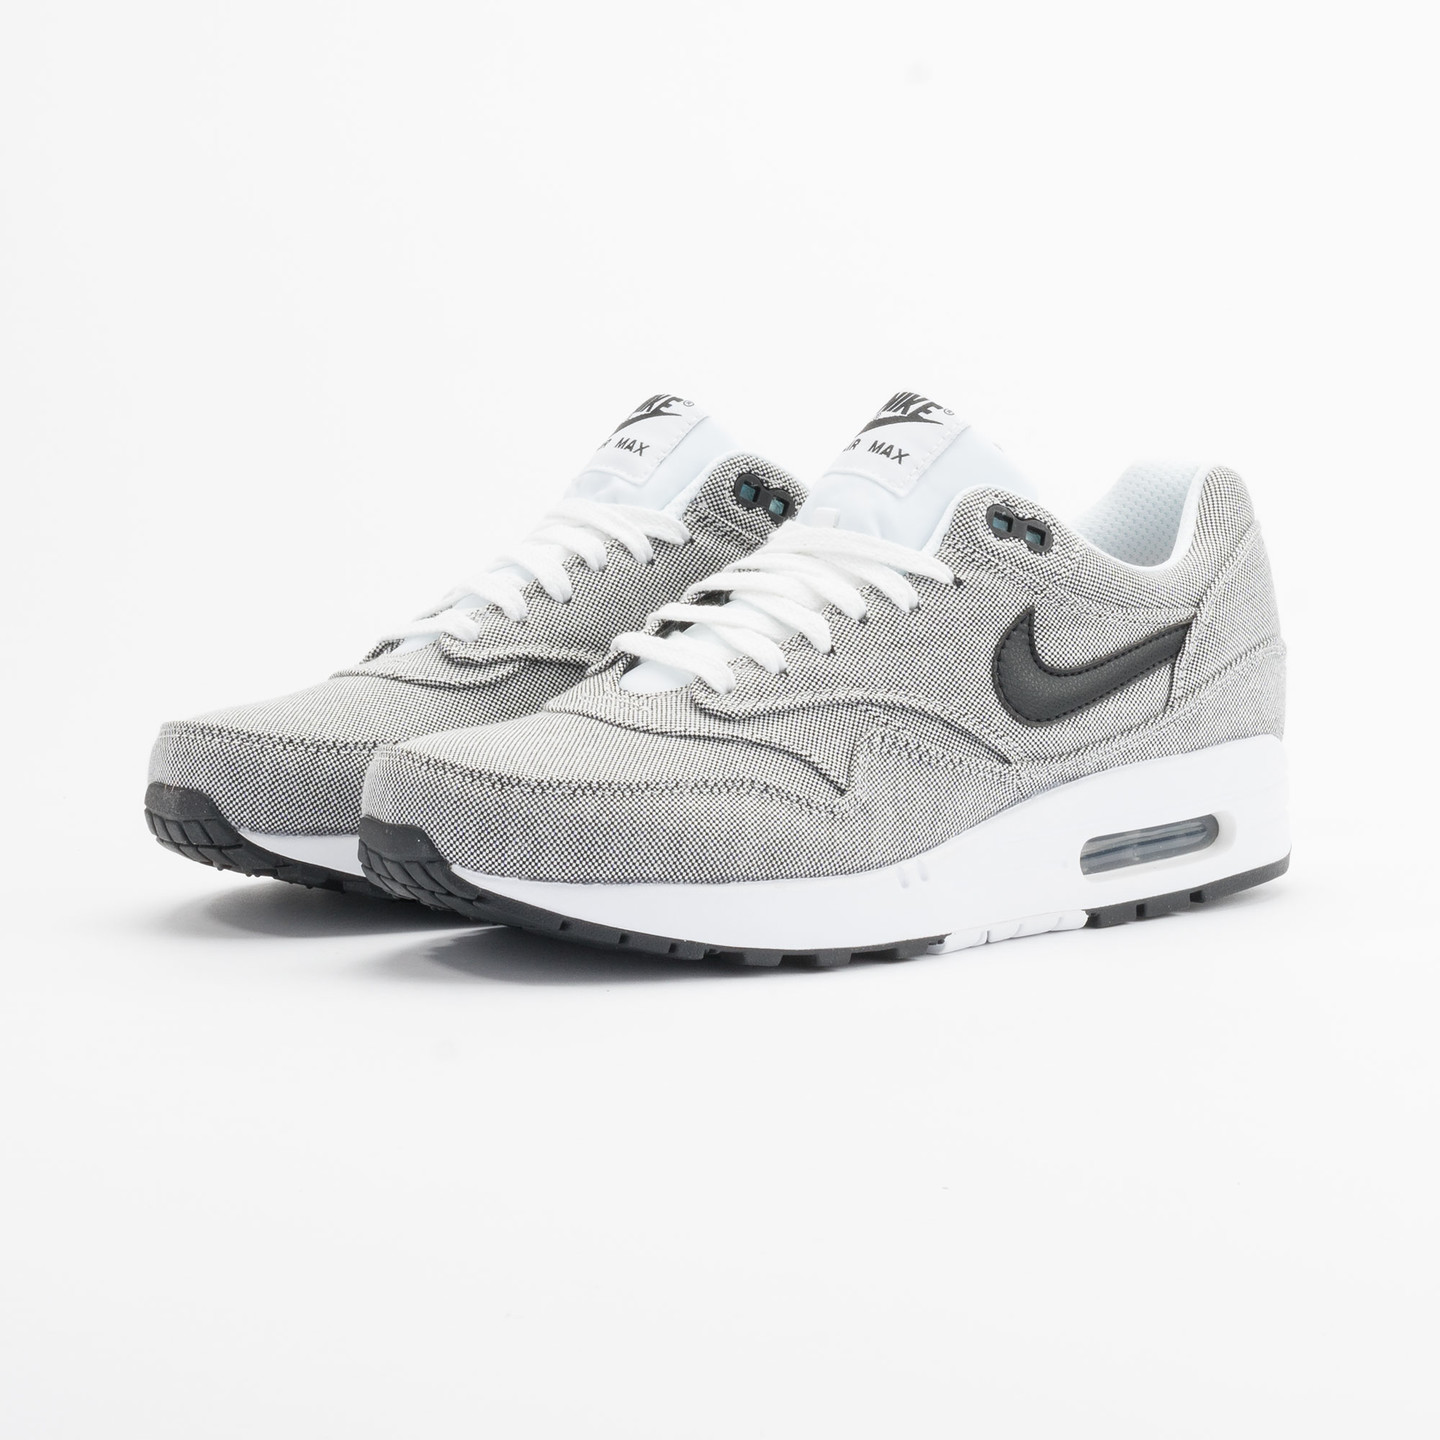 Nike Air Max 1 Prm Picknick Pack Black/White 512033-103-43